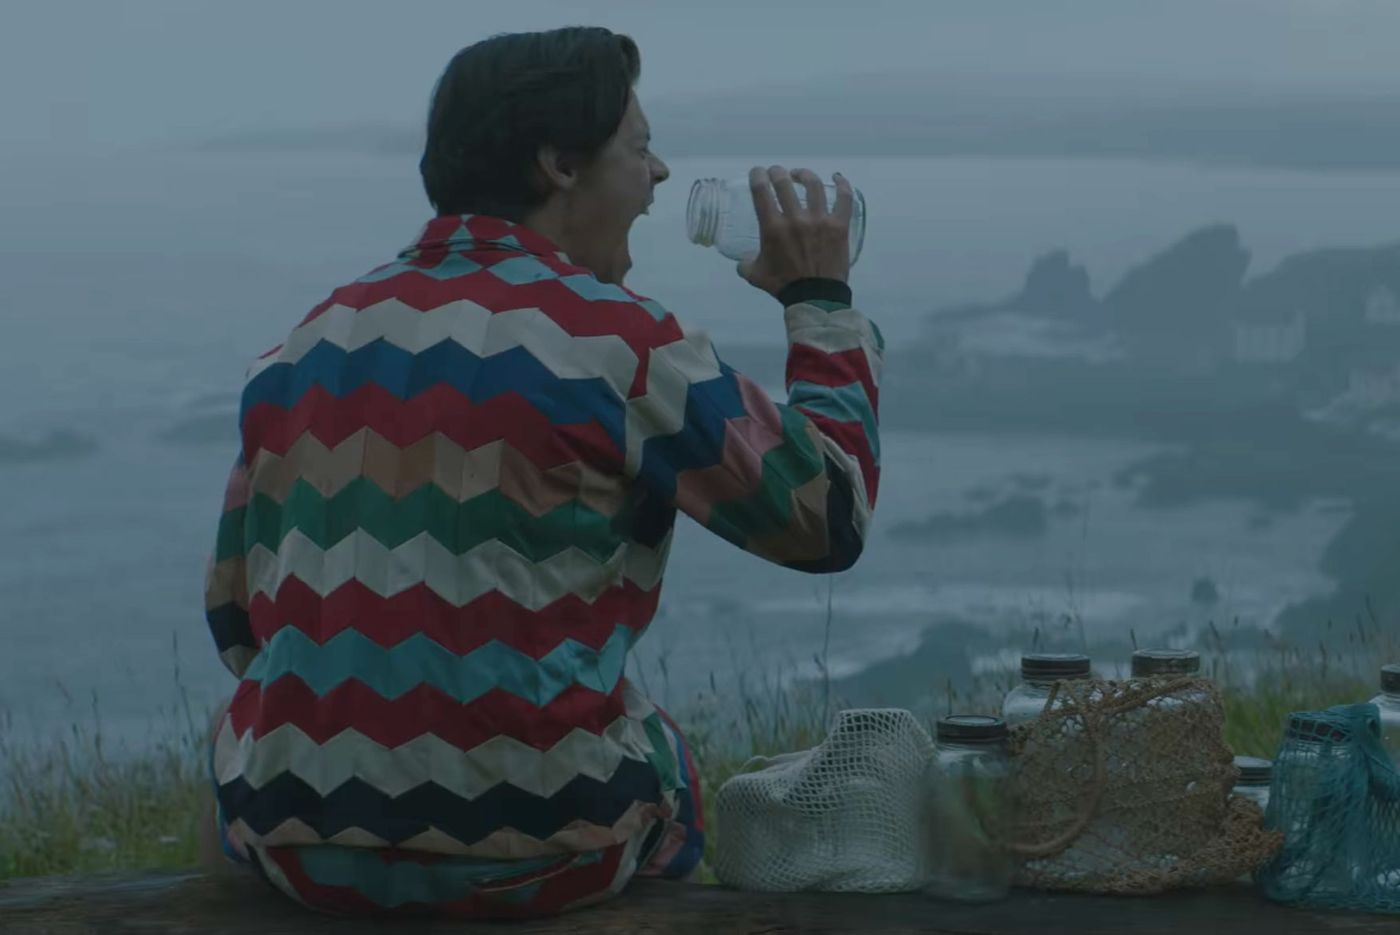 Harry Styles Adore You Introduces Scream Powered Sailboat